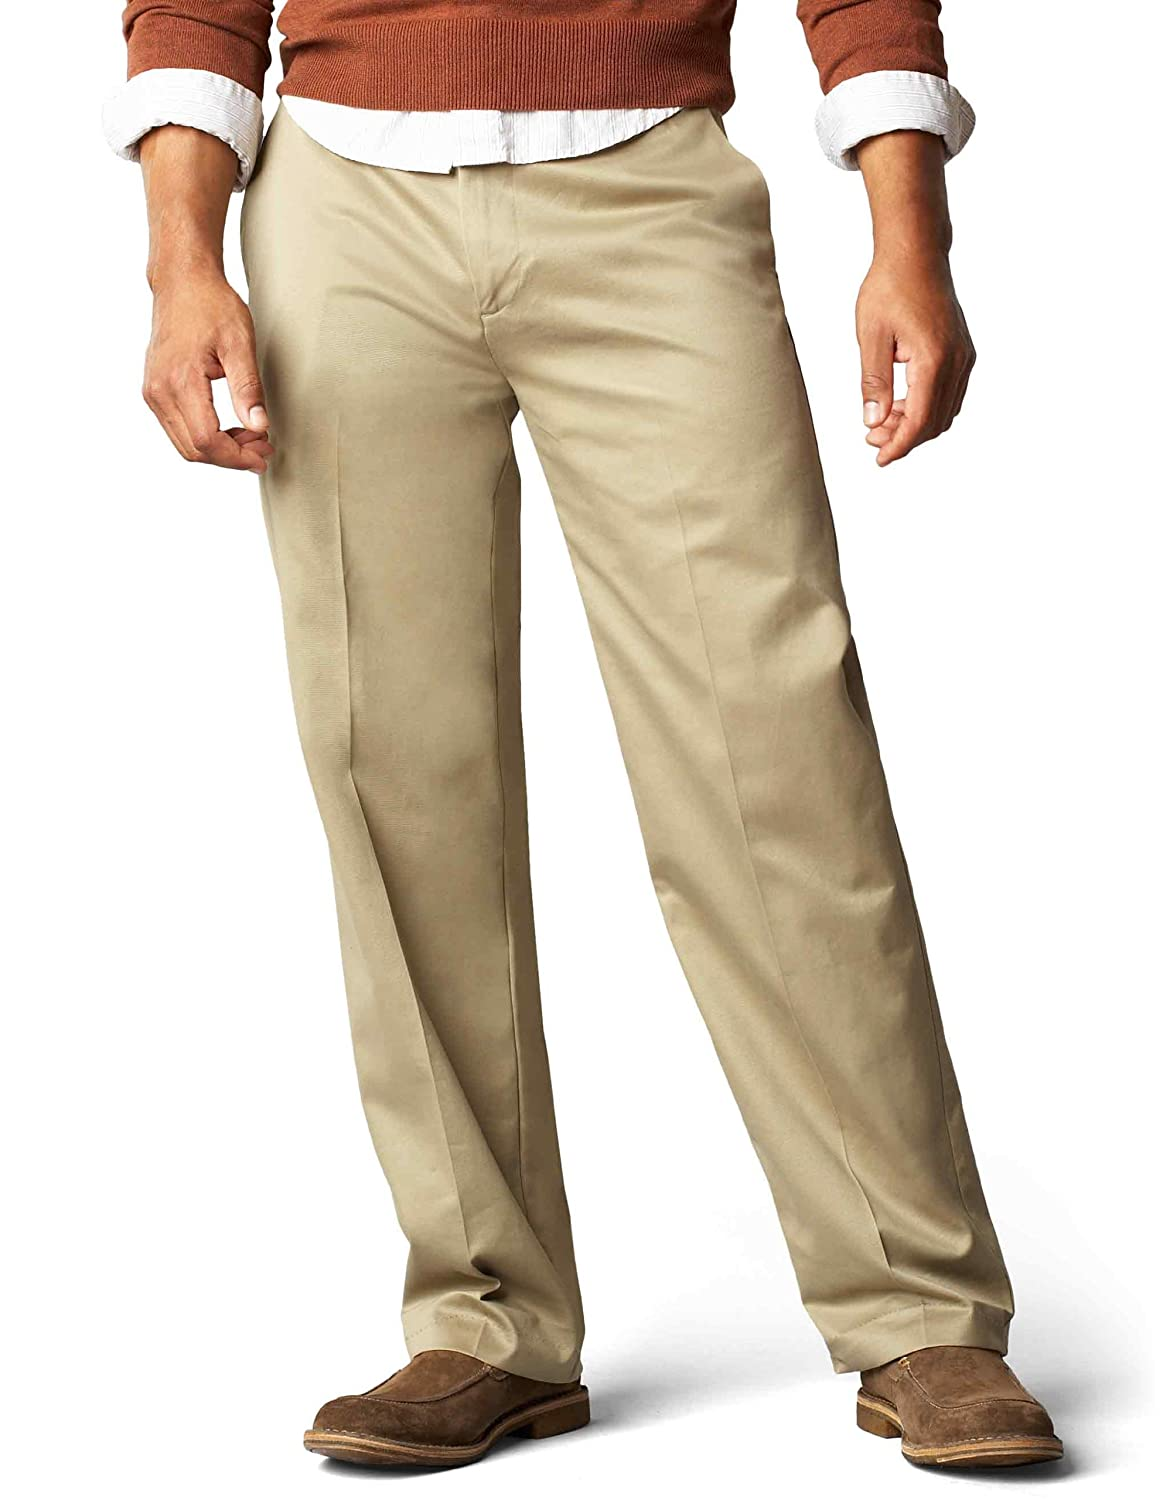 85c6f606ce867a Dockers Men's Signature Khaki D3 Classic Fit Flat Front Pant, Dark Khaki,  34x30: Amazon.ca: Clothing & Accessories